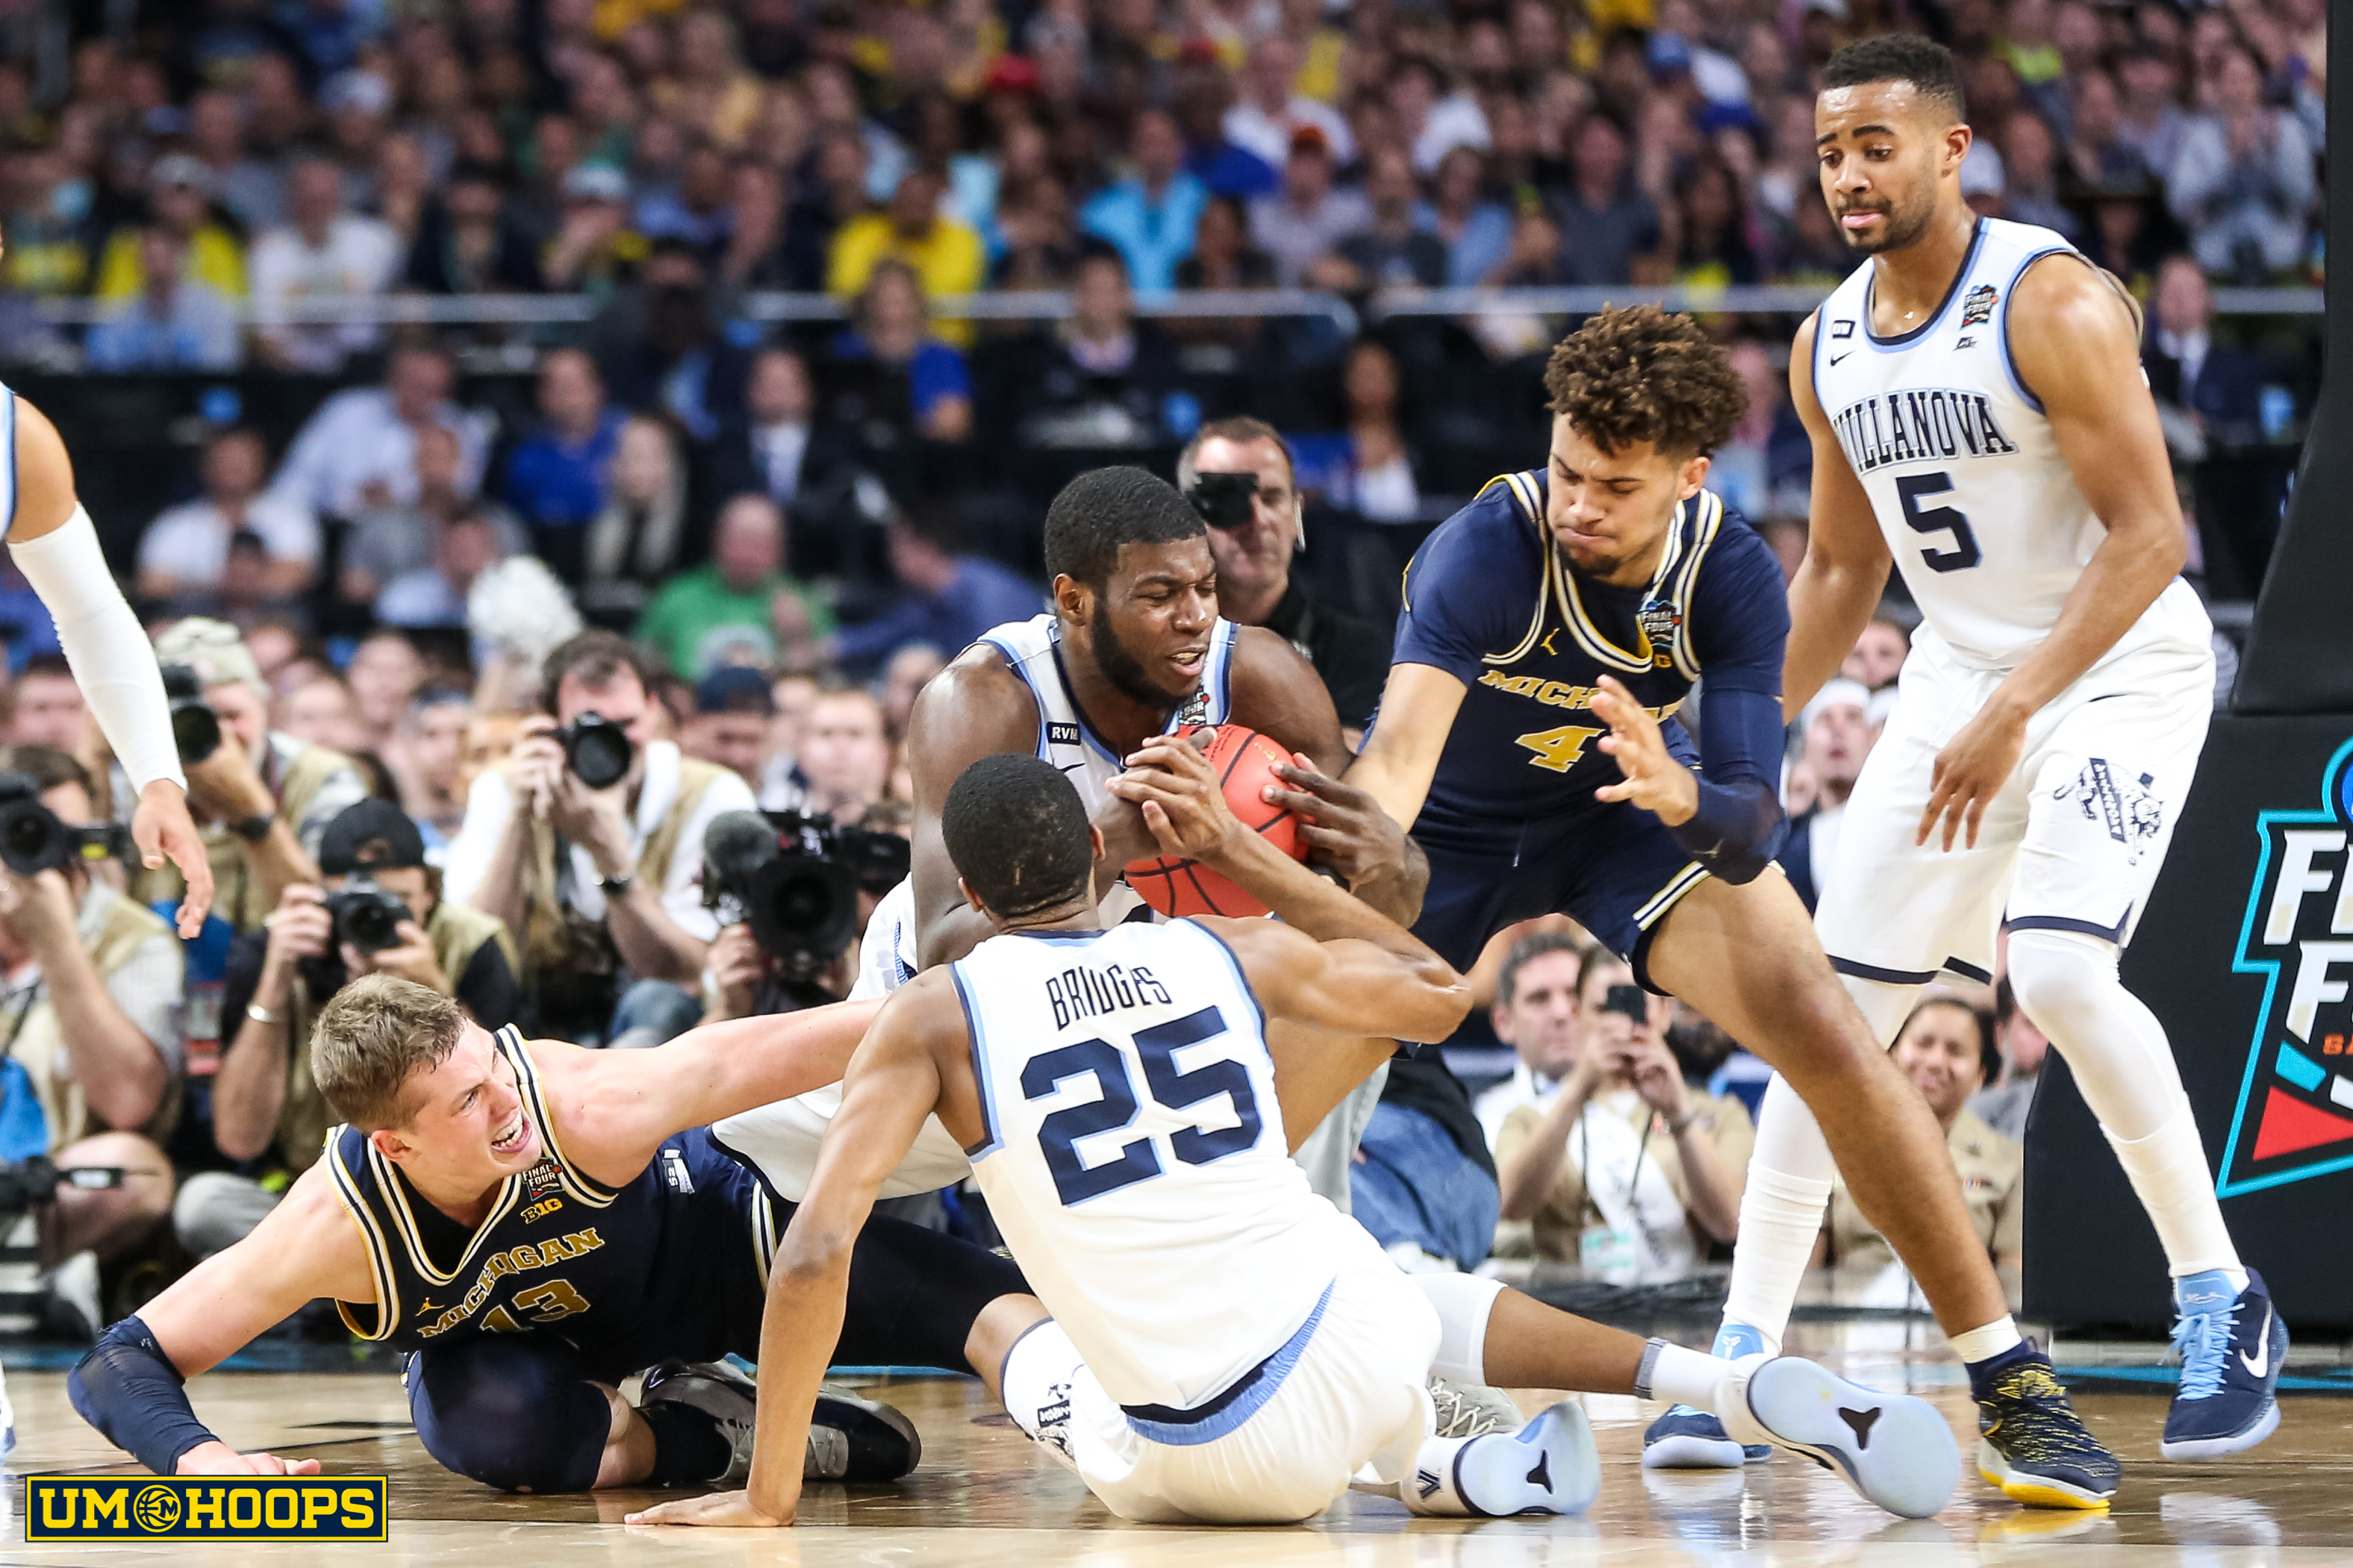 Villanova 79, Michigan 62-13